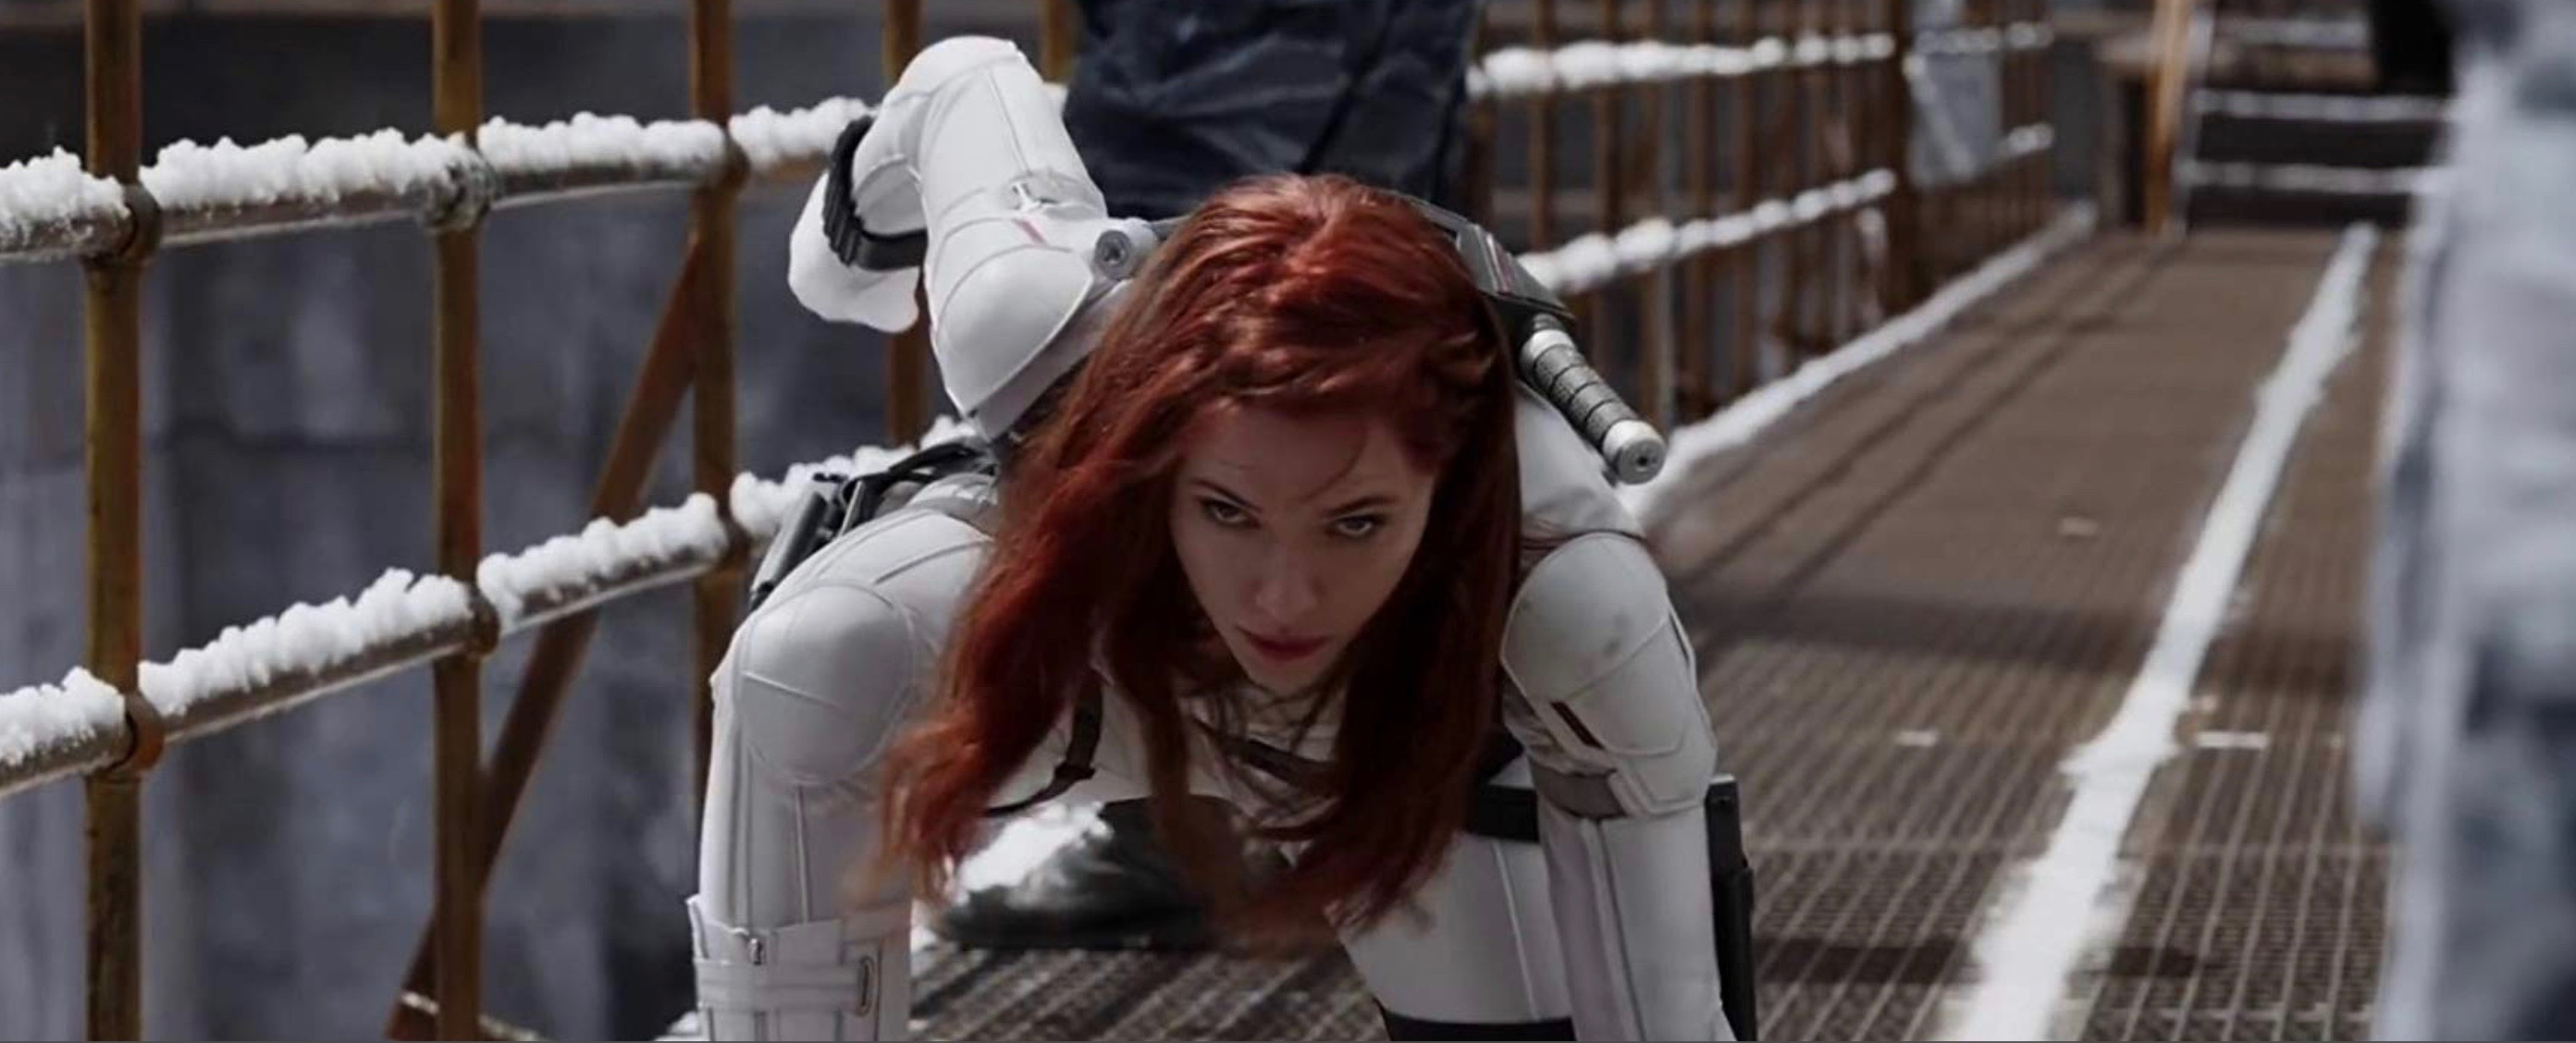 Marvel Releases First Trailer For Black Widow Movie